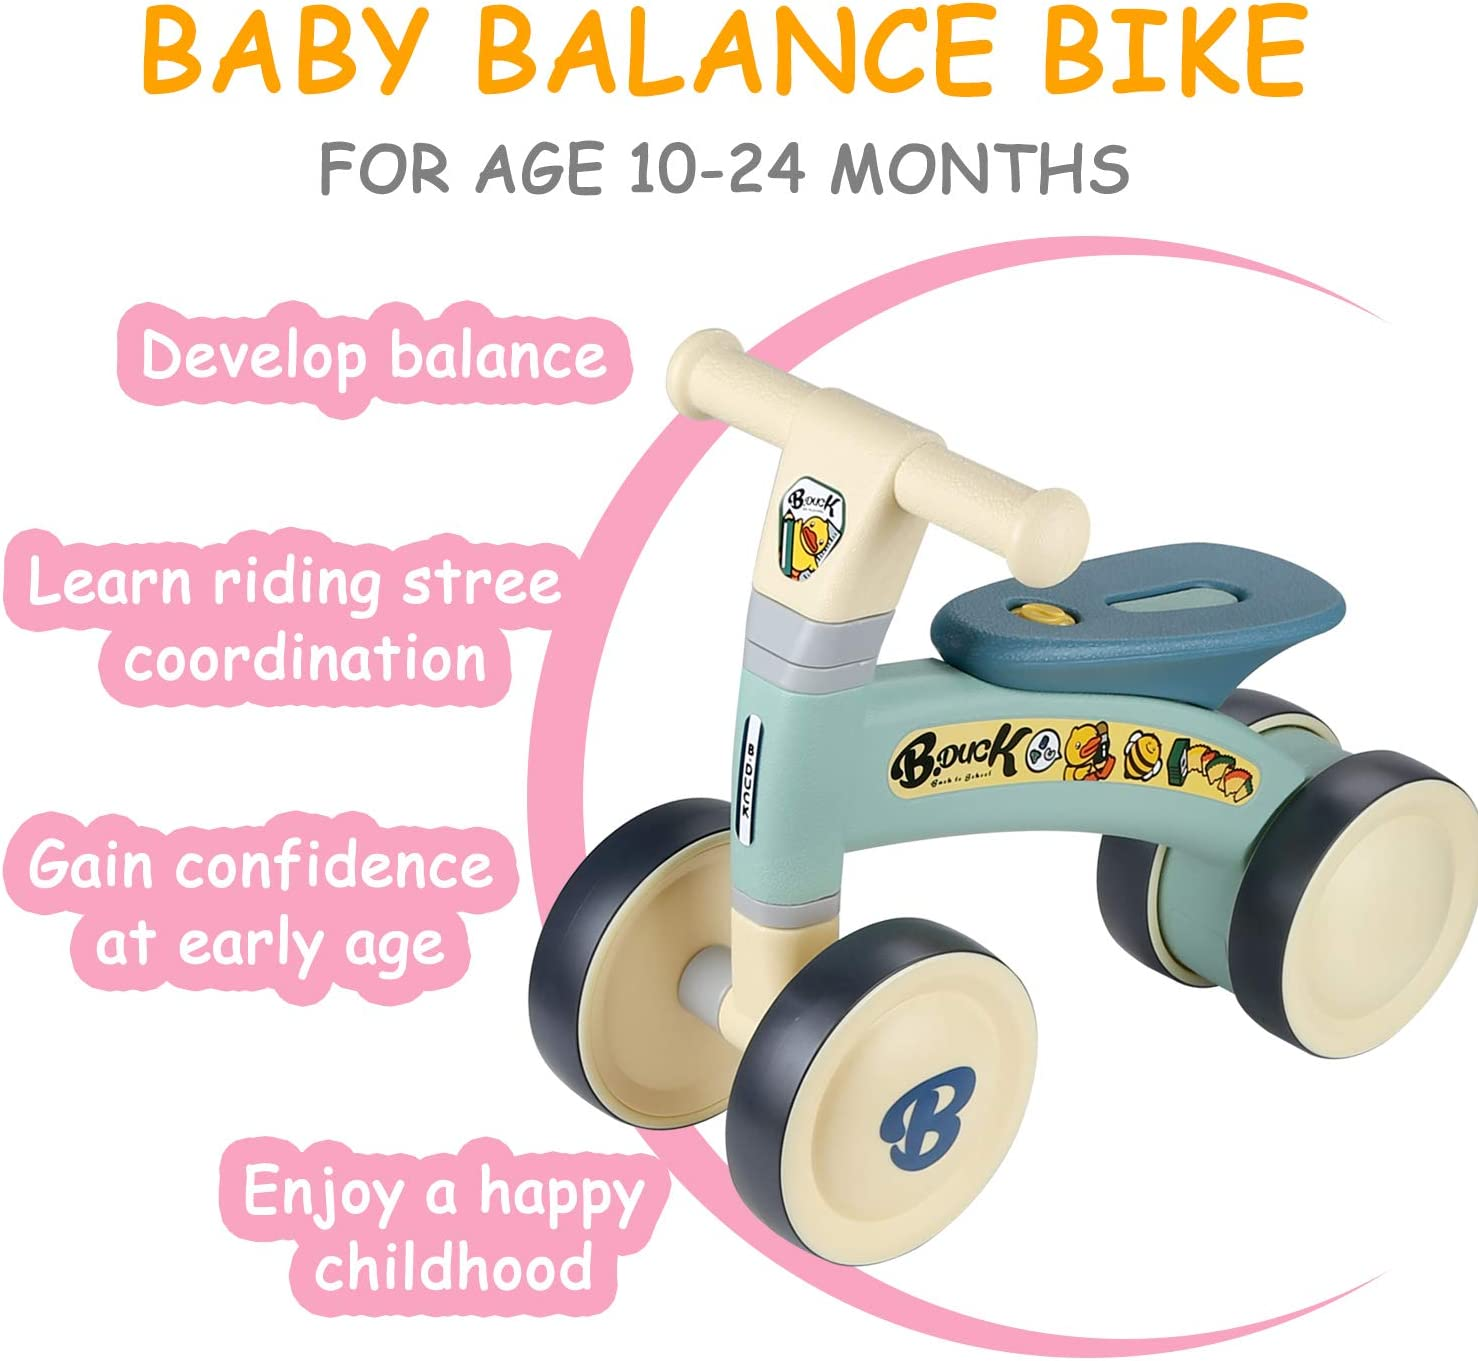 A Timy Baby Balance Bike for 1 Year Old/'s Riding Toys for 10-24 Months Toddler